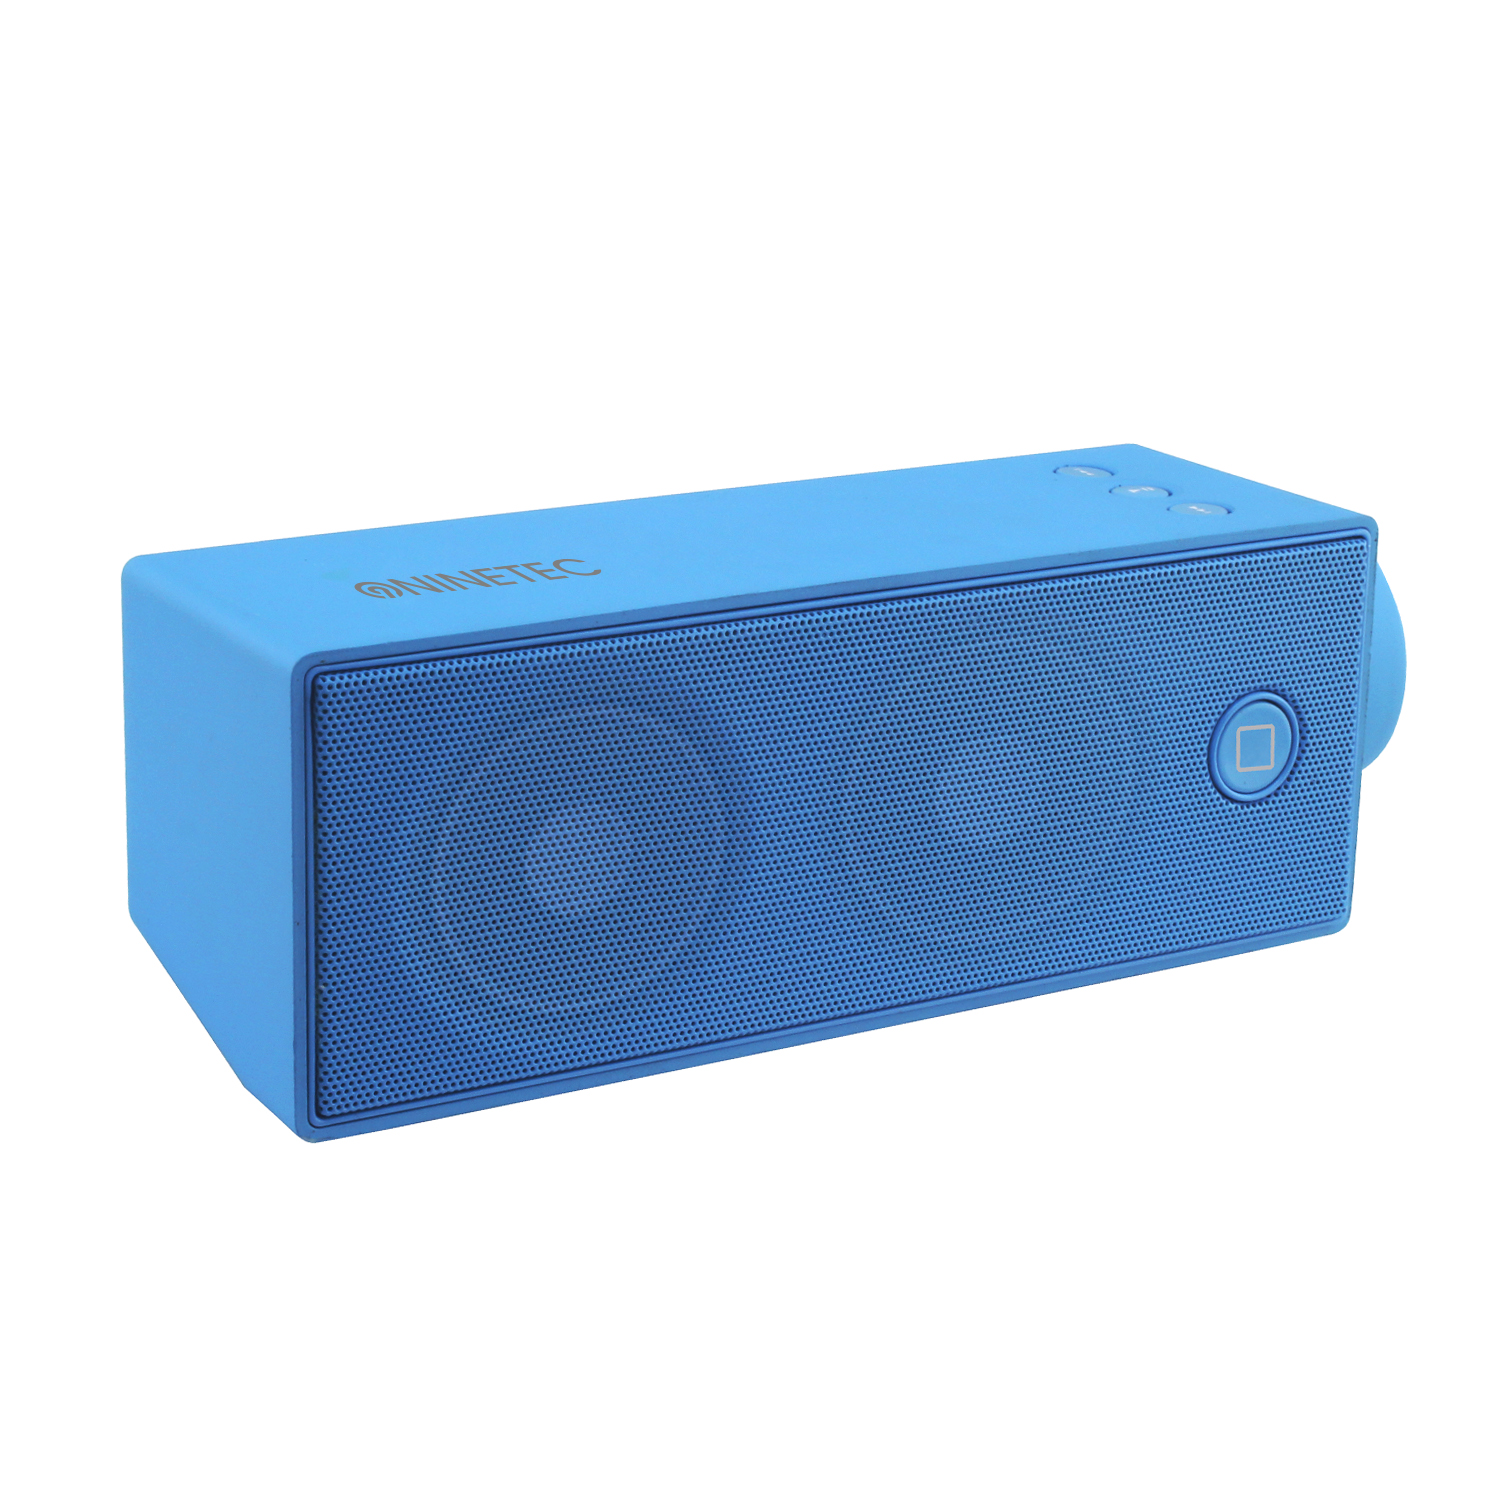 NINETEC SoundBoost Bluetooth Music Speaker Blau